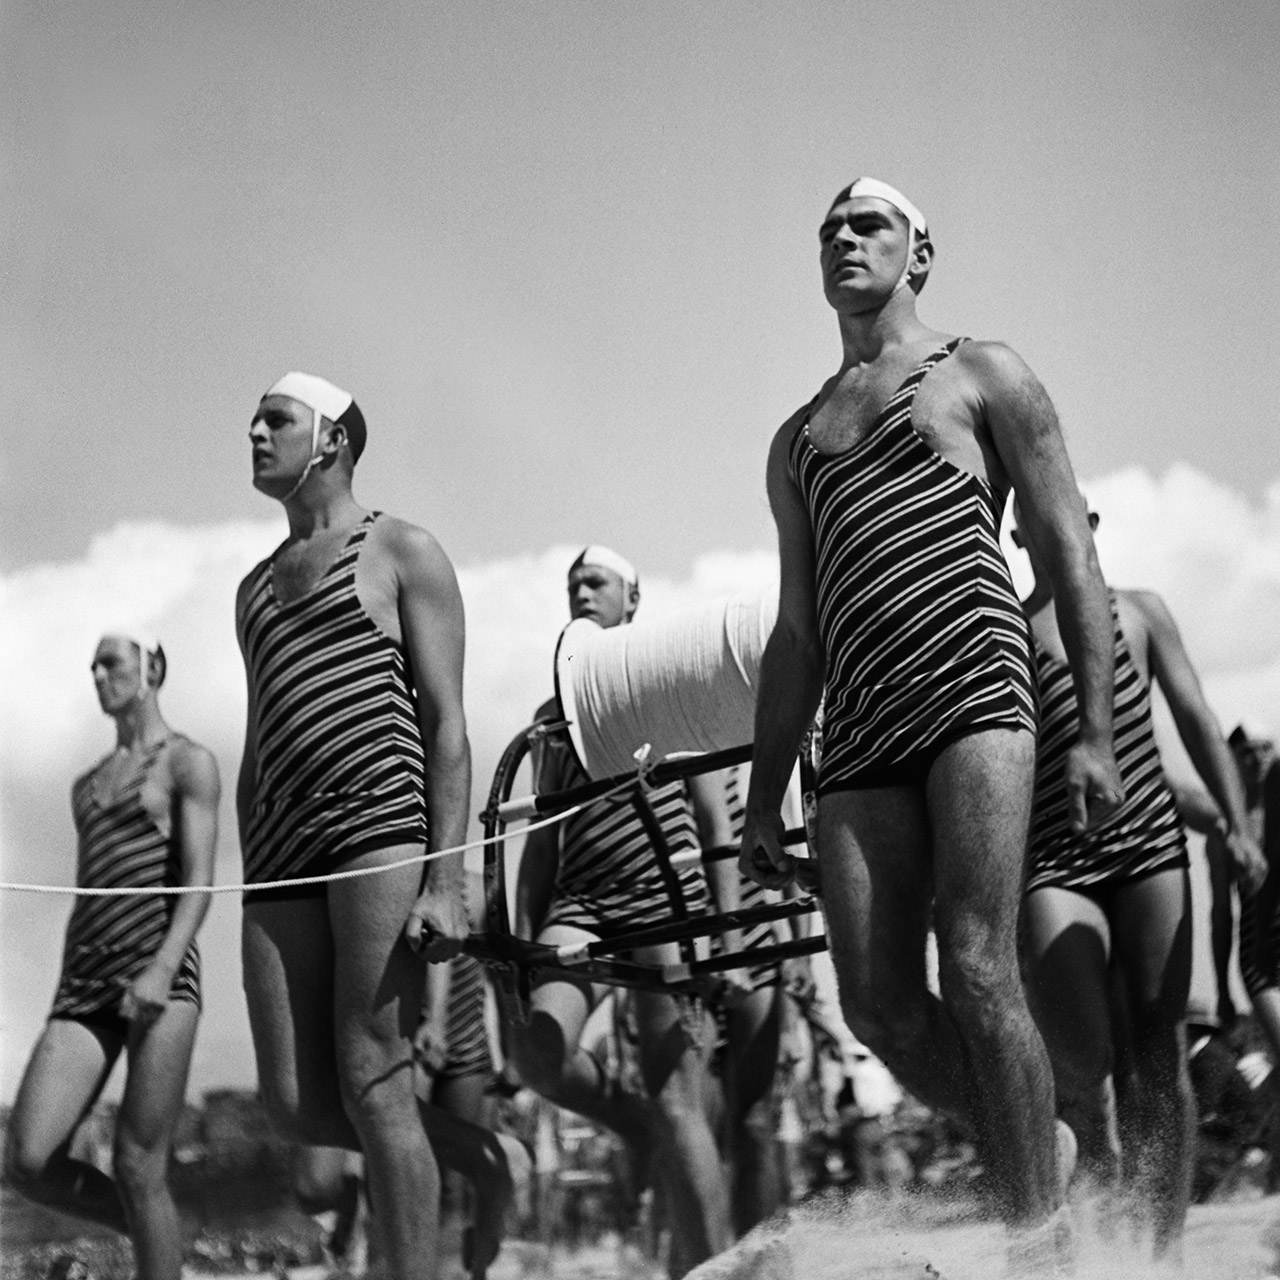 Freshwater Surf Life Saving Club reel team march-past, 3 April 1938. (Digital ID: a2391014)